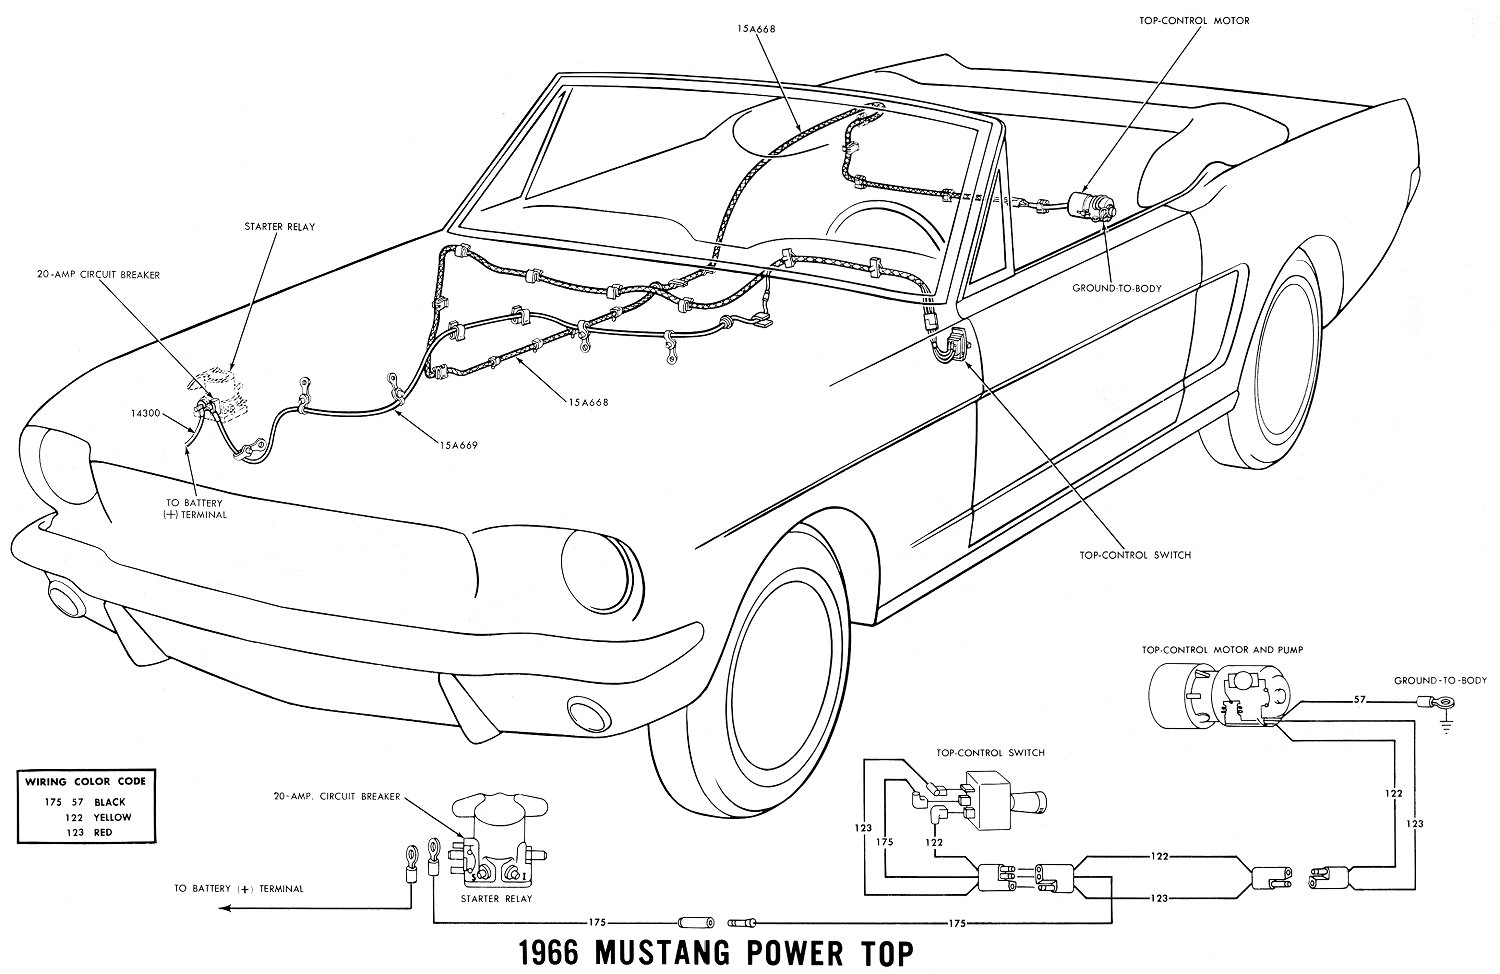 66pwrtop 1966 mustang wiring diagrams average joe restoration 66 mustang engine wiring diagram free at soozxer.org